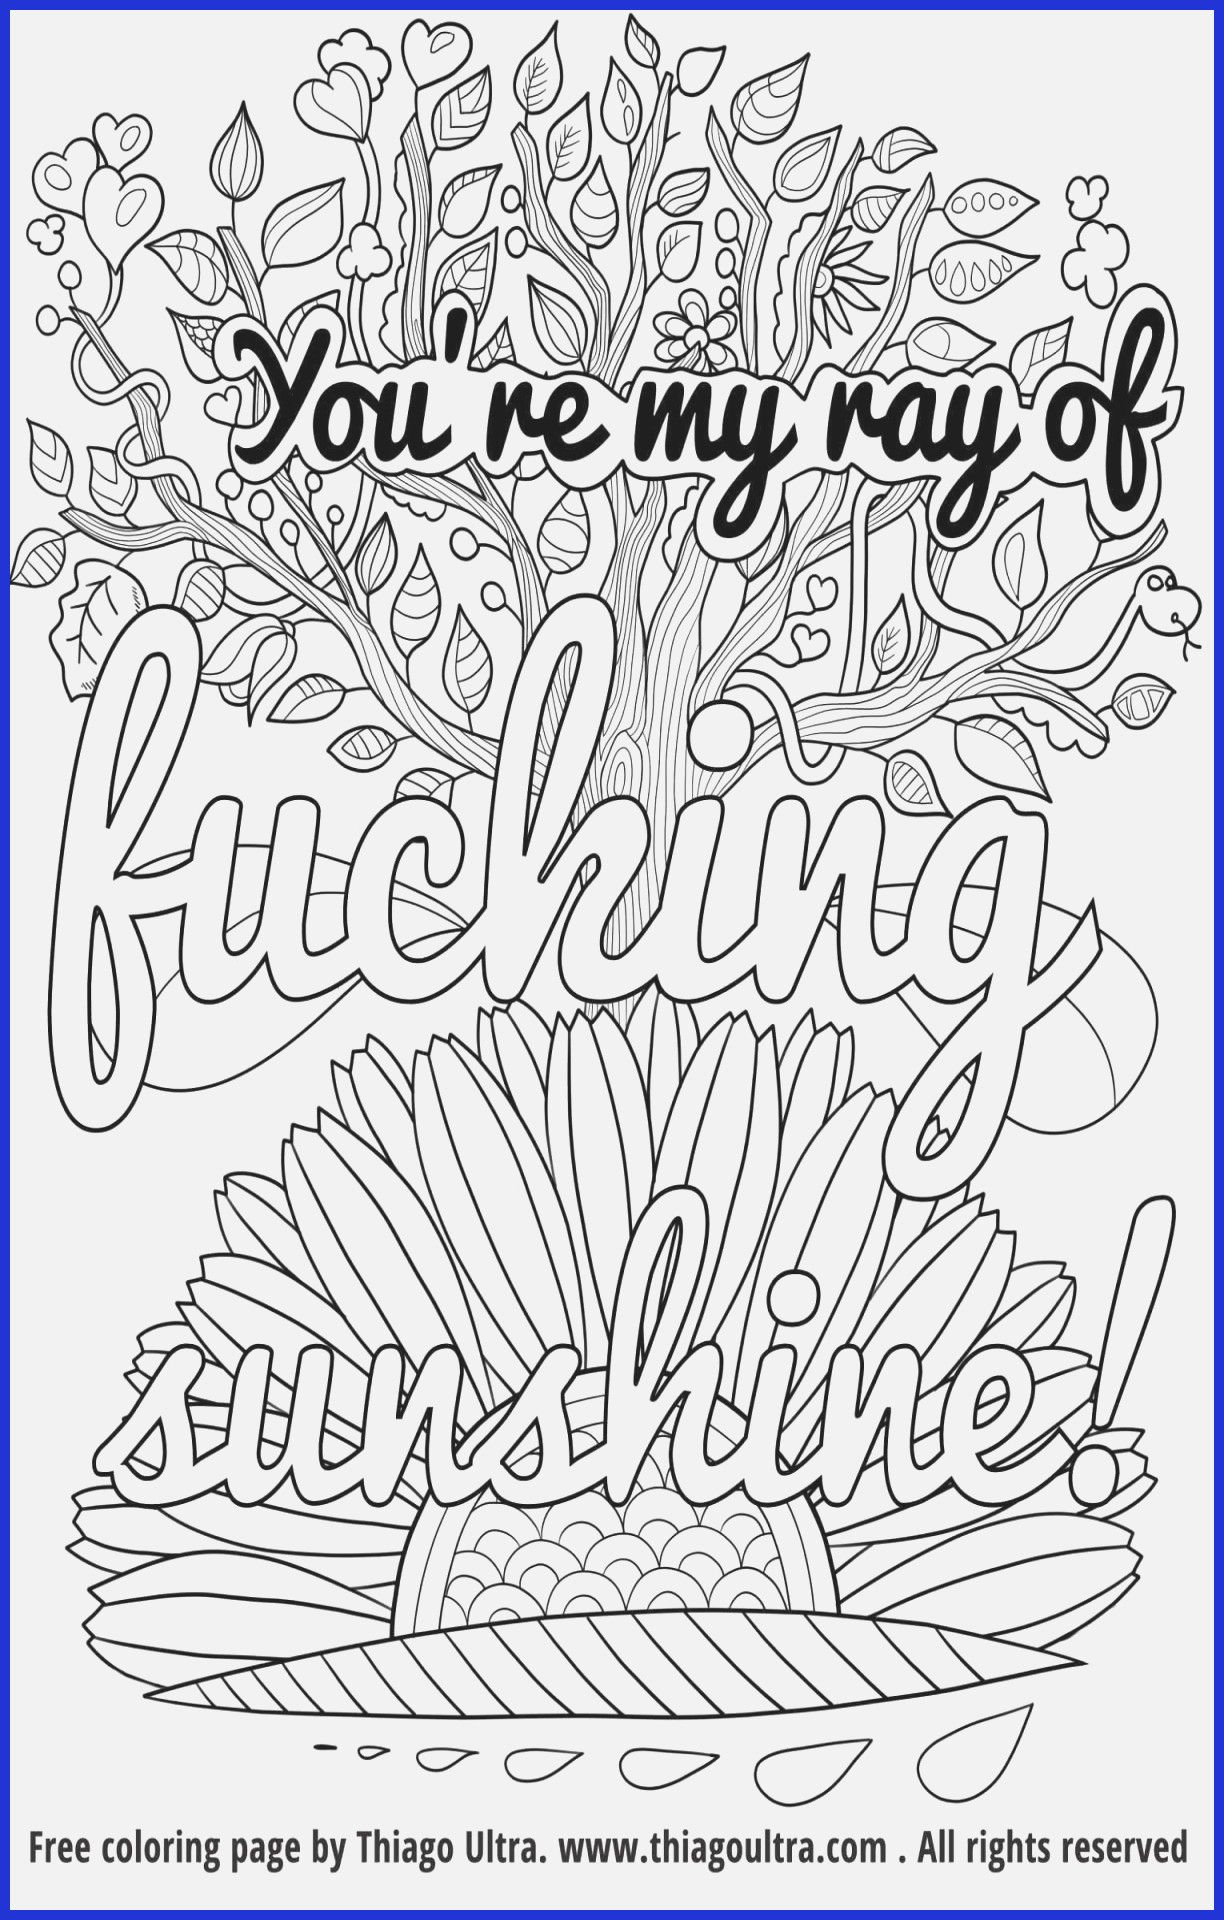 Swear Word Coloring Pages Word Coloring Pages Rises Meilleures 14 Awesome Adult Swear Word Words Coloring Book Cool Coloring Pages Free Adult Coloring Pages